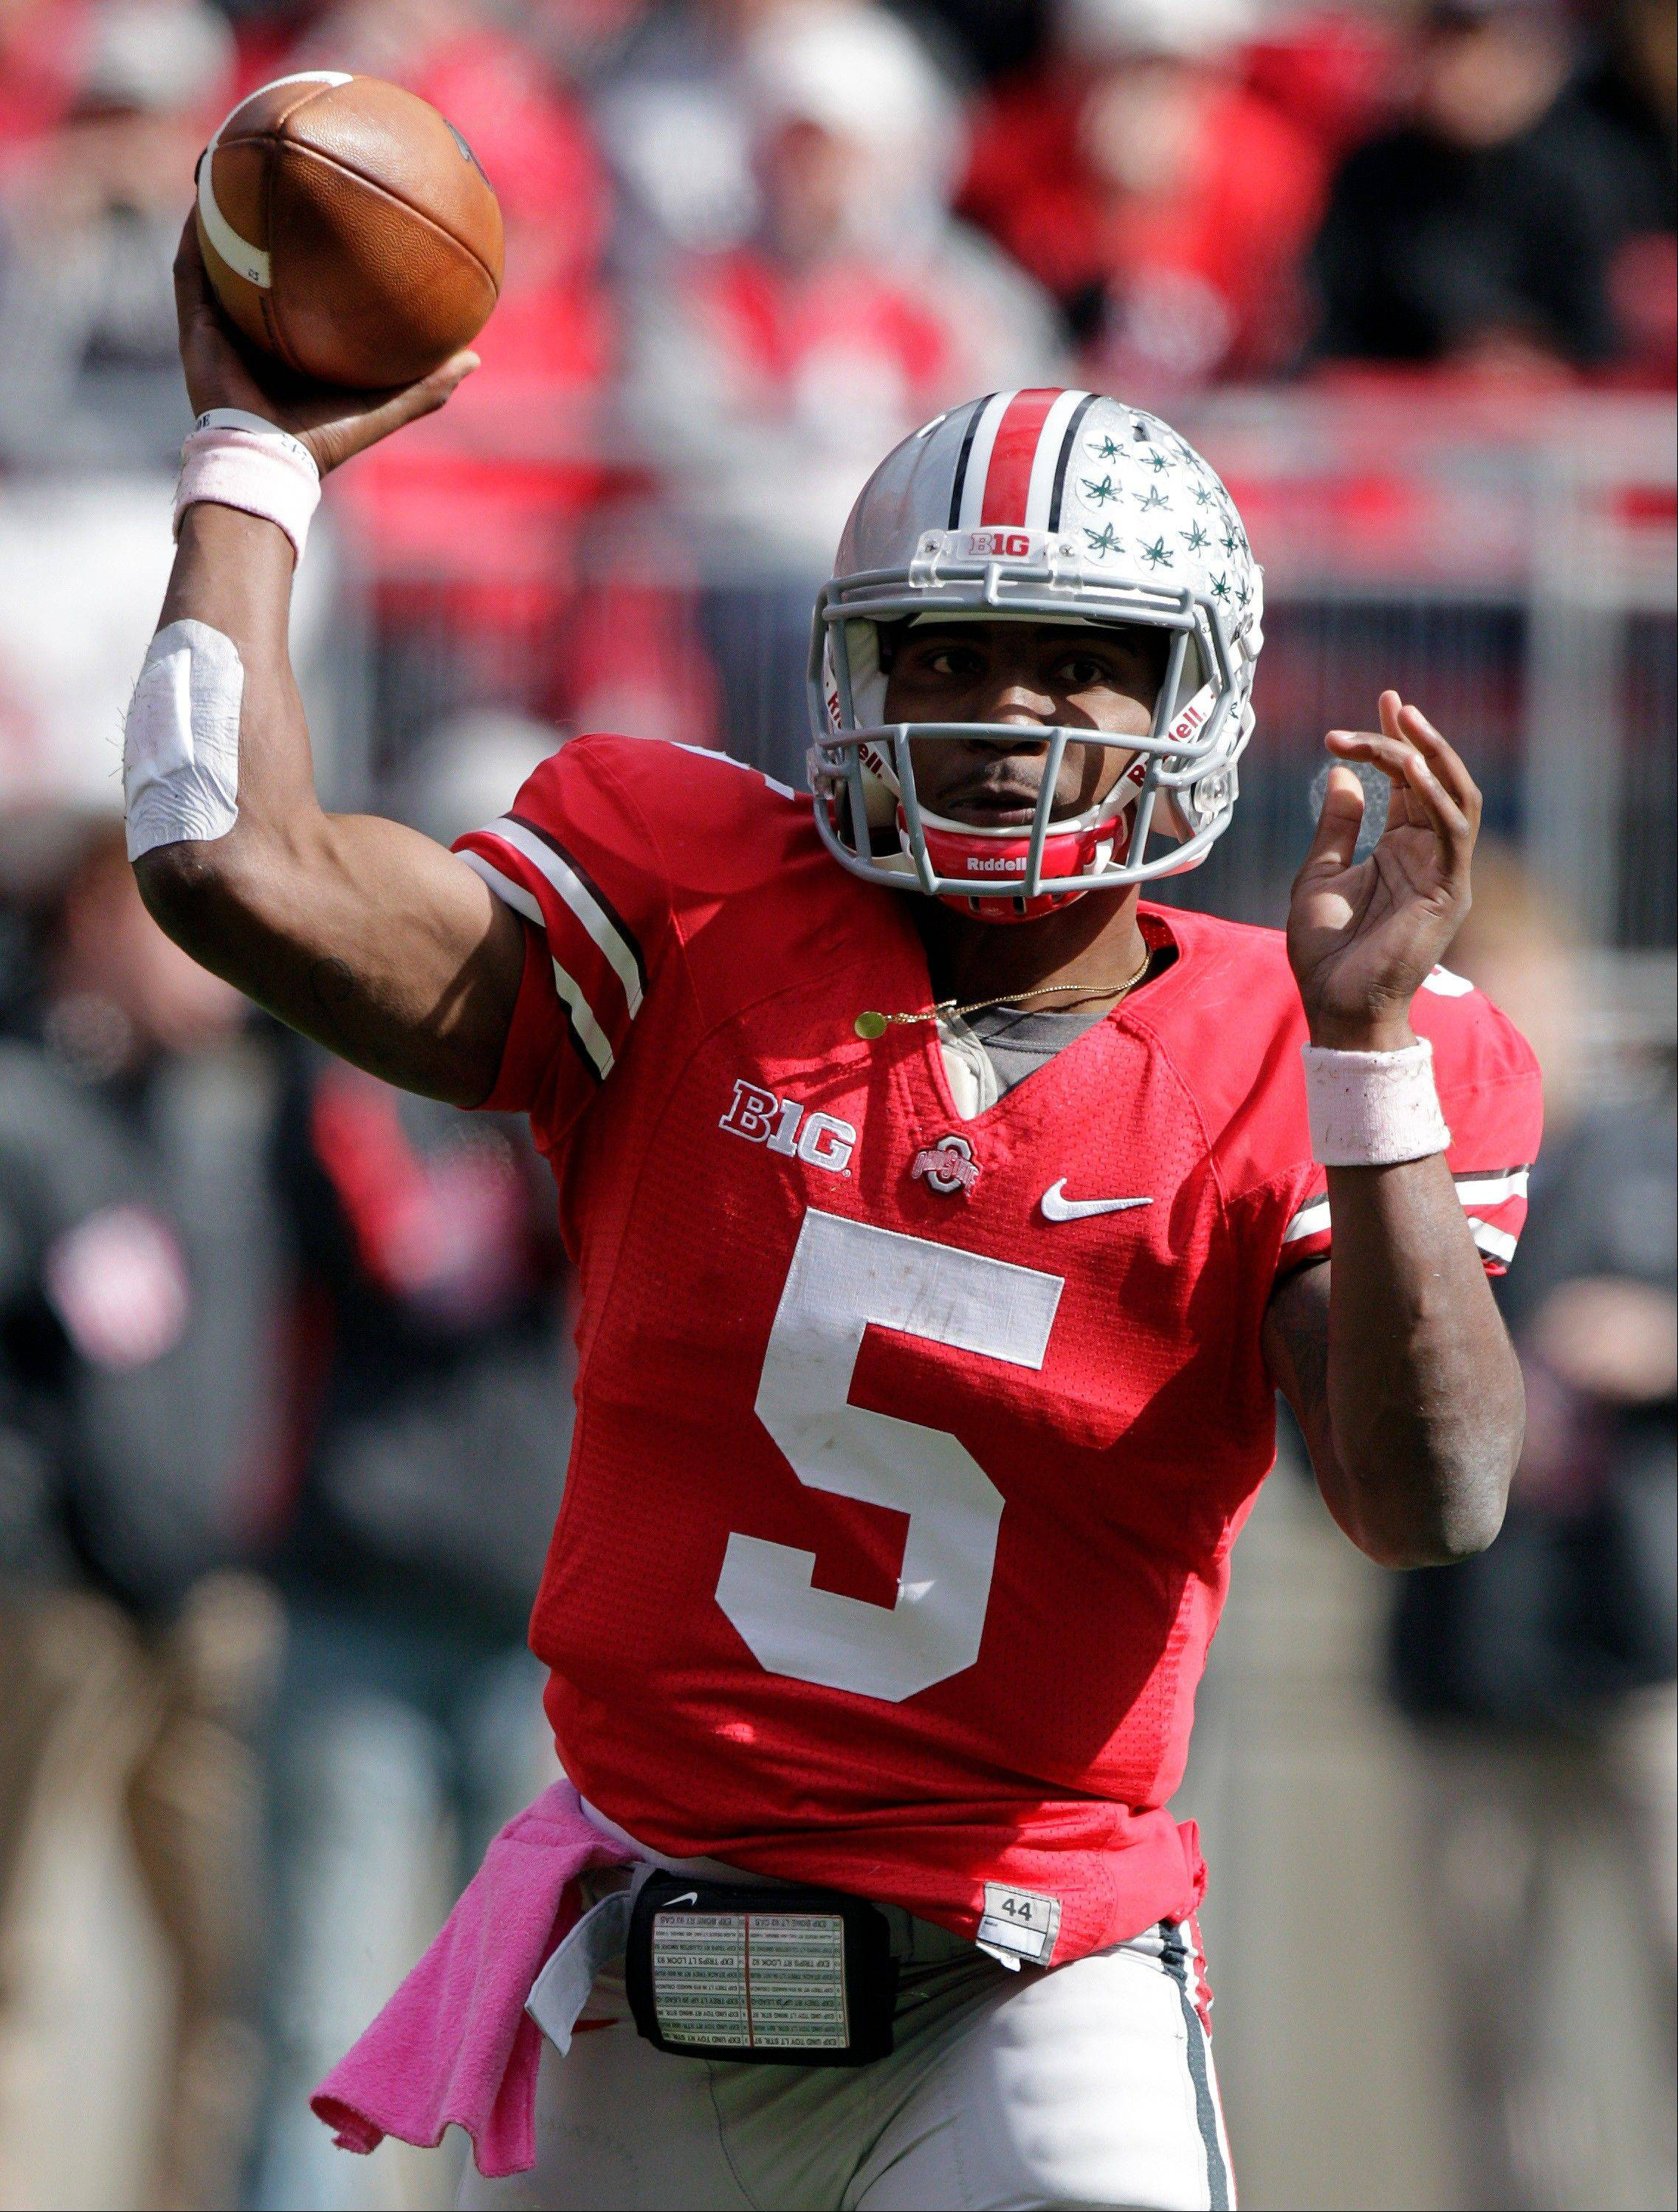 Ohio State quarterback Braxton Miller appeared to be seriously hurt in last week�s 29-22 overtime win against Purdue but returned to practice this week and seems to be fine